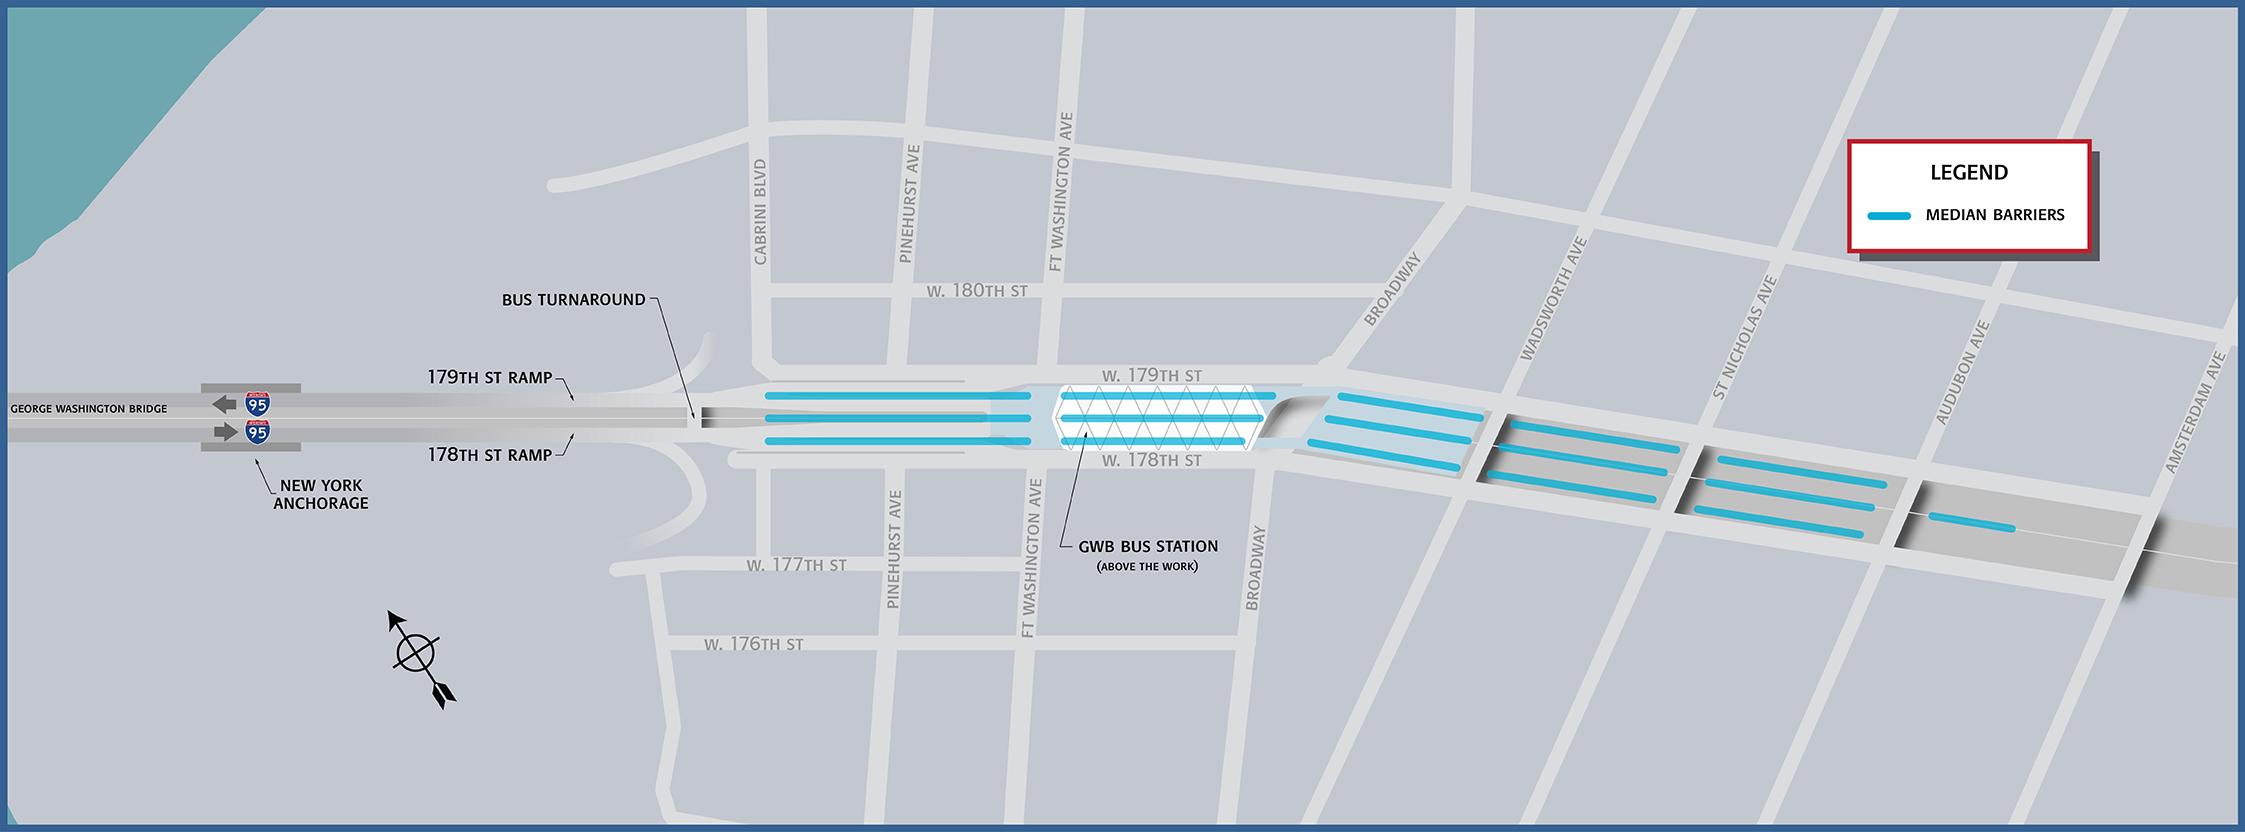 Map of Trans-Manhattan Expressway medians to be replaced. Credit: Port Authority.